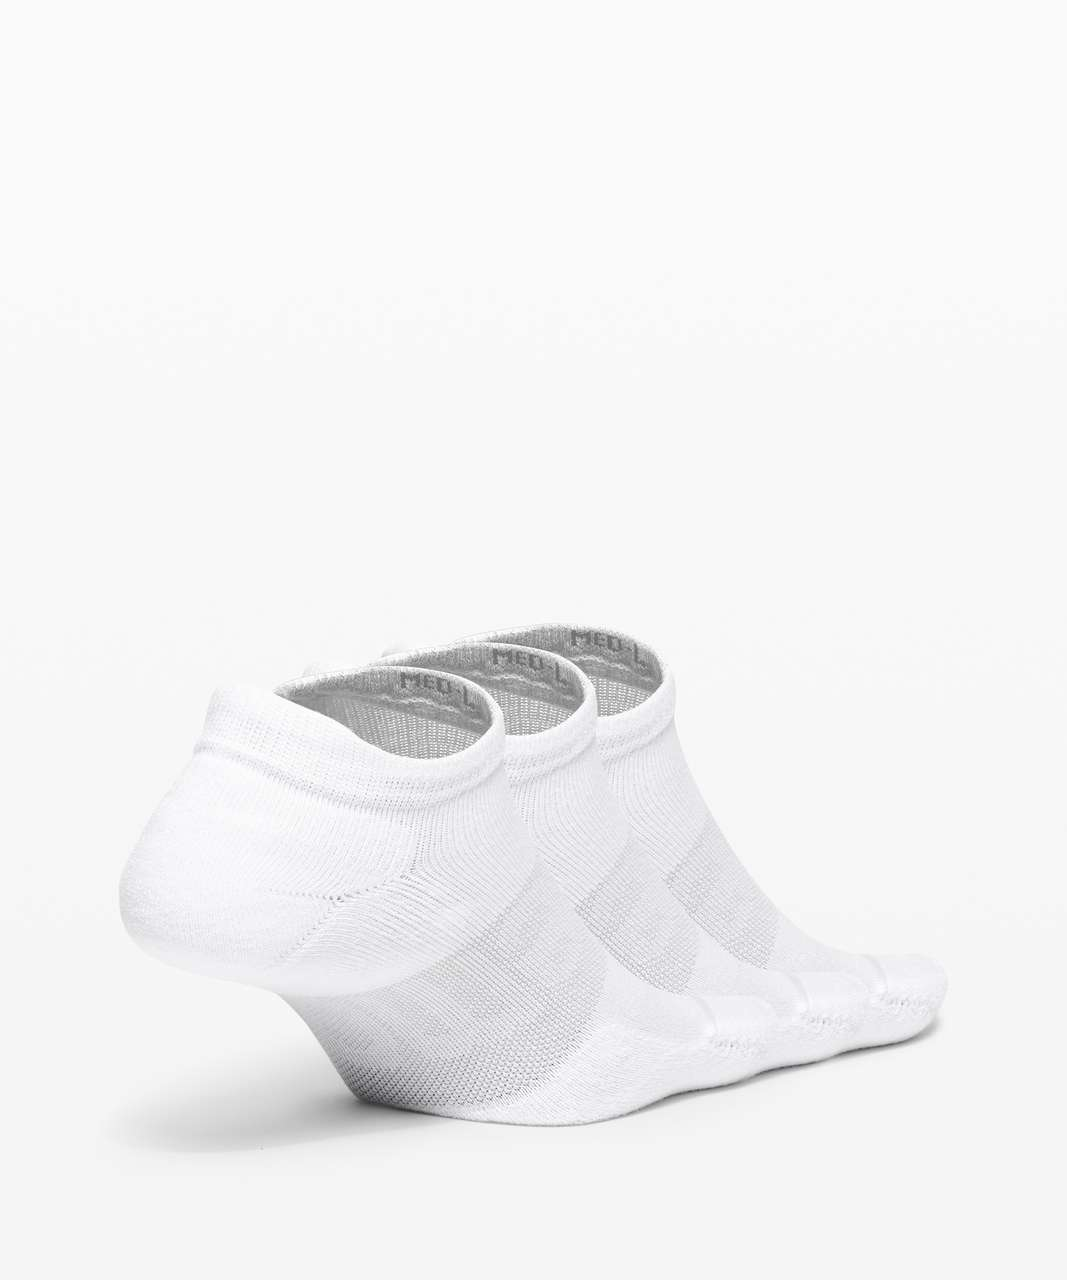 Lululemon Daily Stride Low Ankle Sock *3 Pack - White